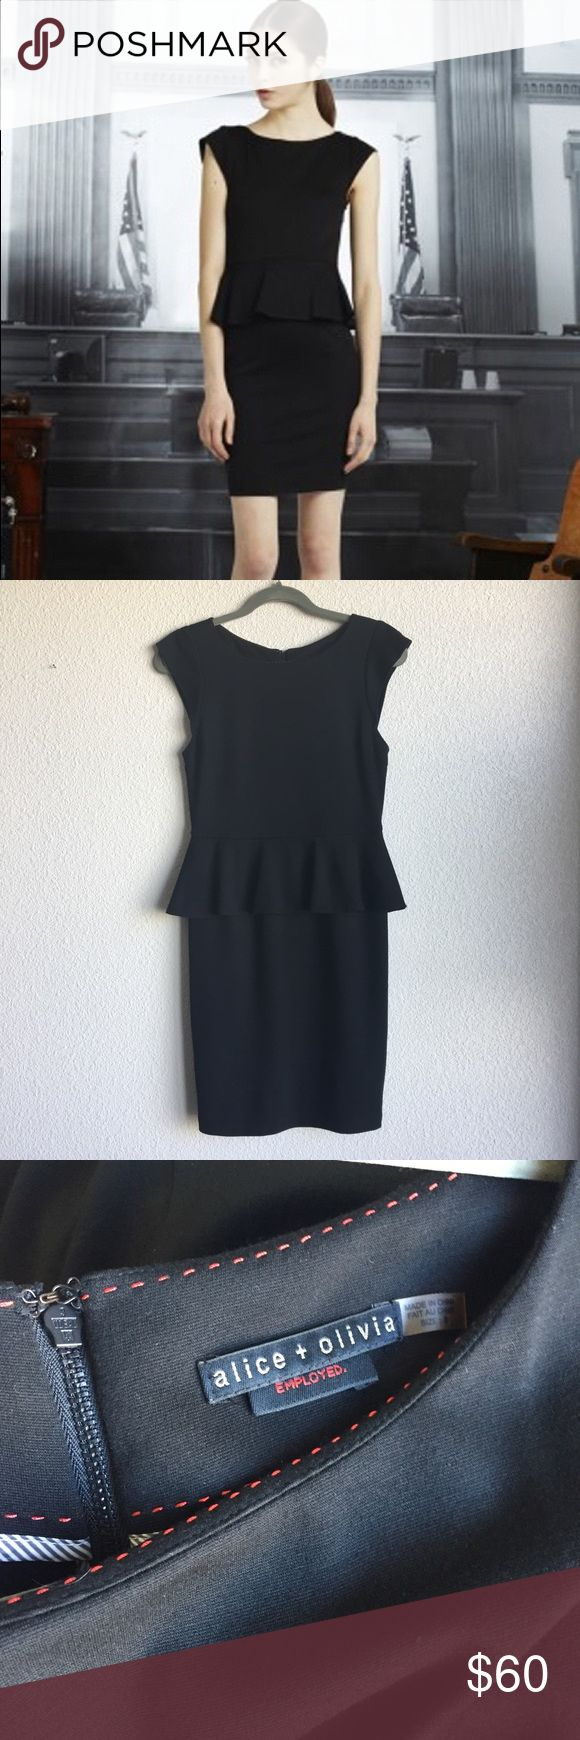 Alice + Olivia Victoria Black Peplum Dress Size 6 Super flattering peplum dress by Alice + Olivia Employed in a size 6. Excellent like new condition. Alice + Olivia Dresses